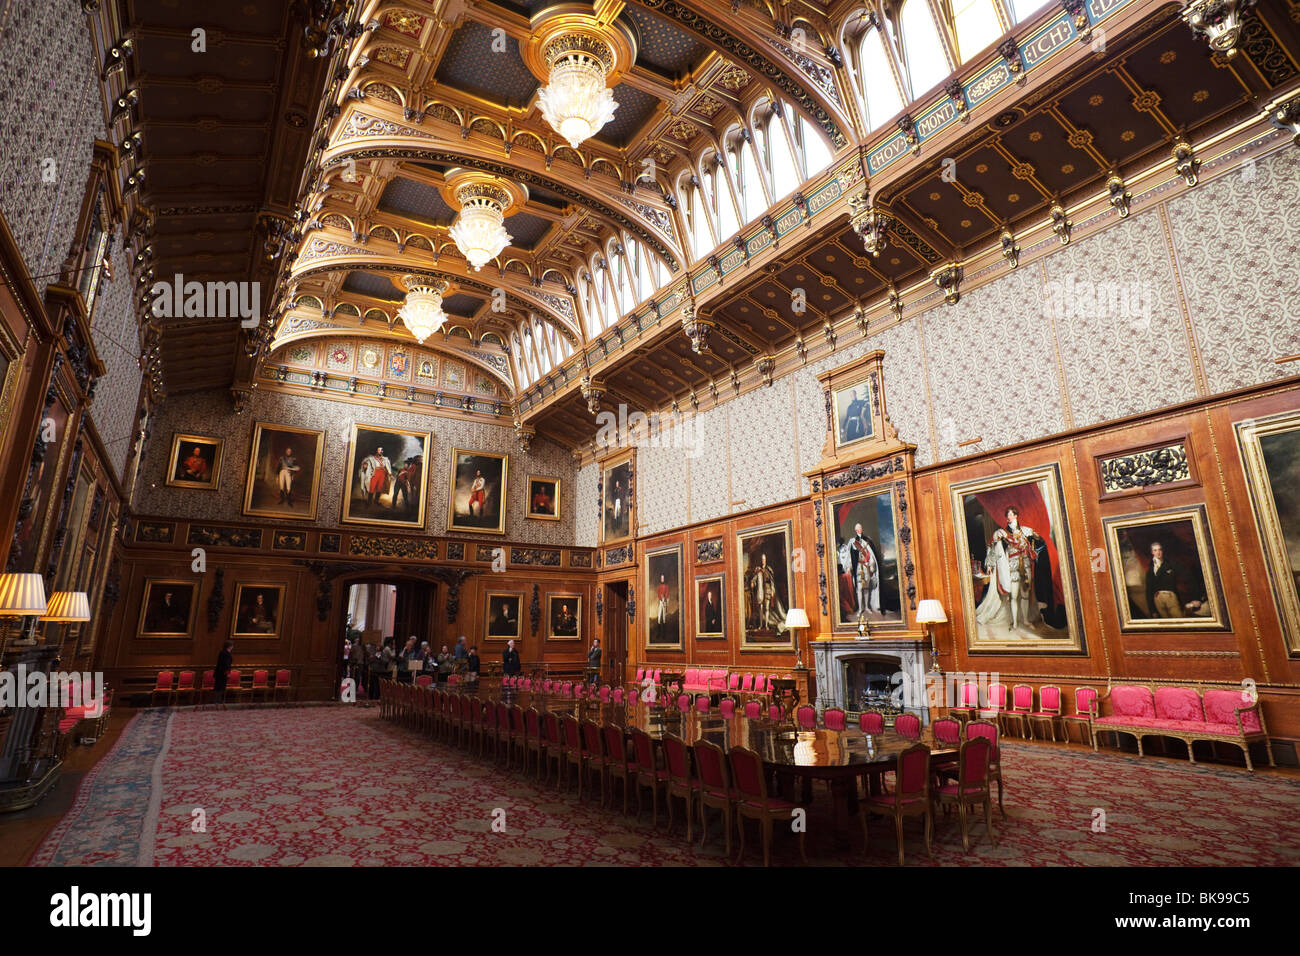 Interiors Of A Chamber Waterloo Chamber Windsor Castle Windsor And Stock Photo Royalty Free